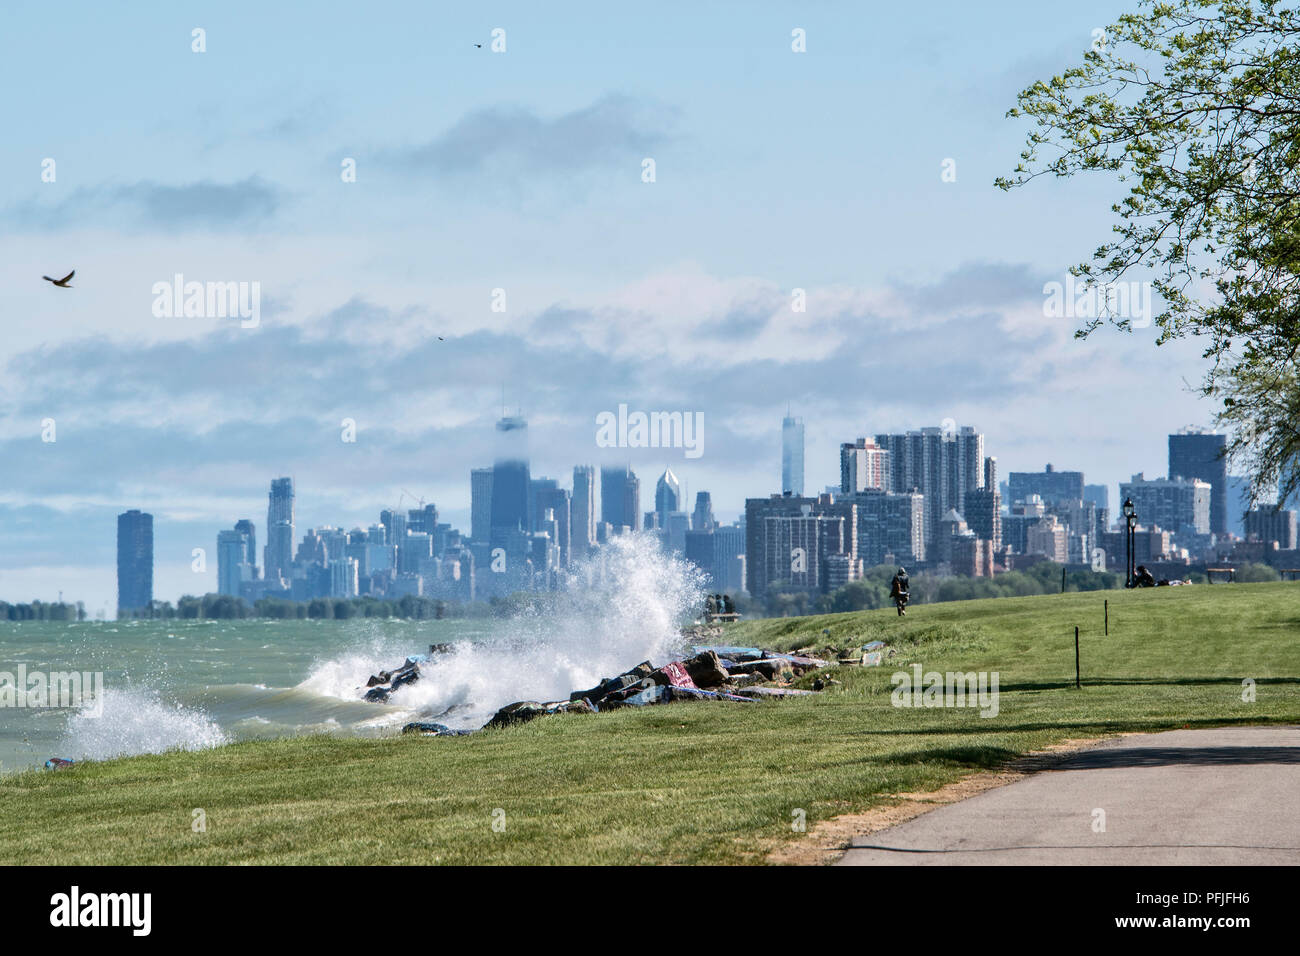 Northwestern University Lakefill in Evanston, Illinois, with a view of Lake Michigan and the Chicago skyline. - Stock Image